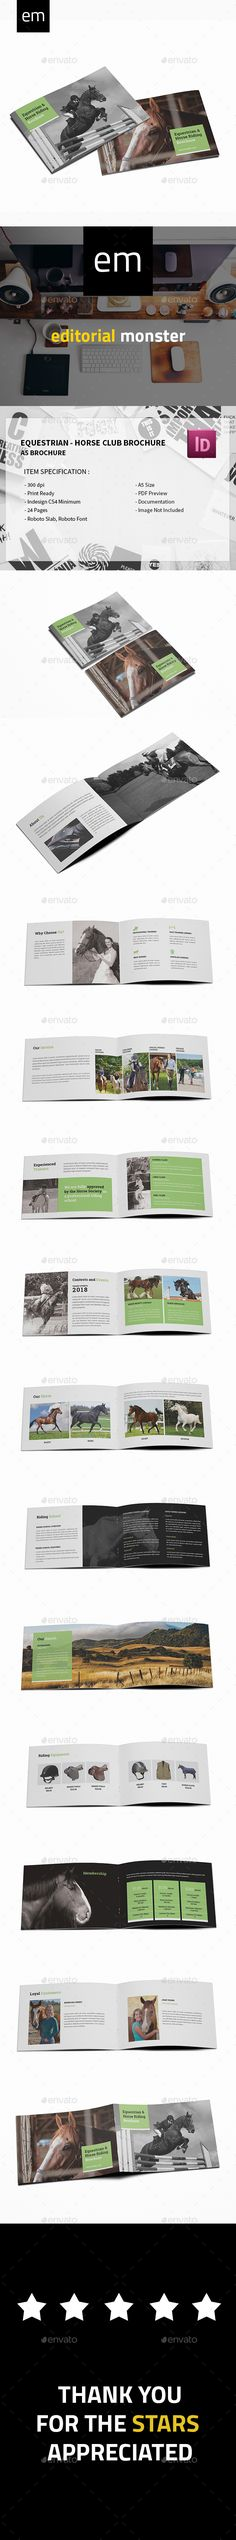 Equestrian  Horse Club Brochure — InDesign INDD #ranch #210x148 • Download ➝ https://graphicriver.net/item/equestrian-horse-club-brochure/20280716?ref=pxcr